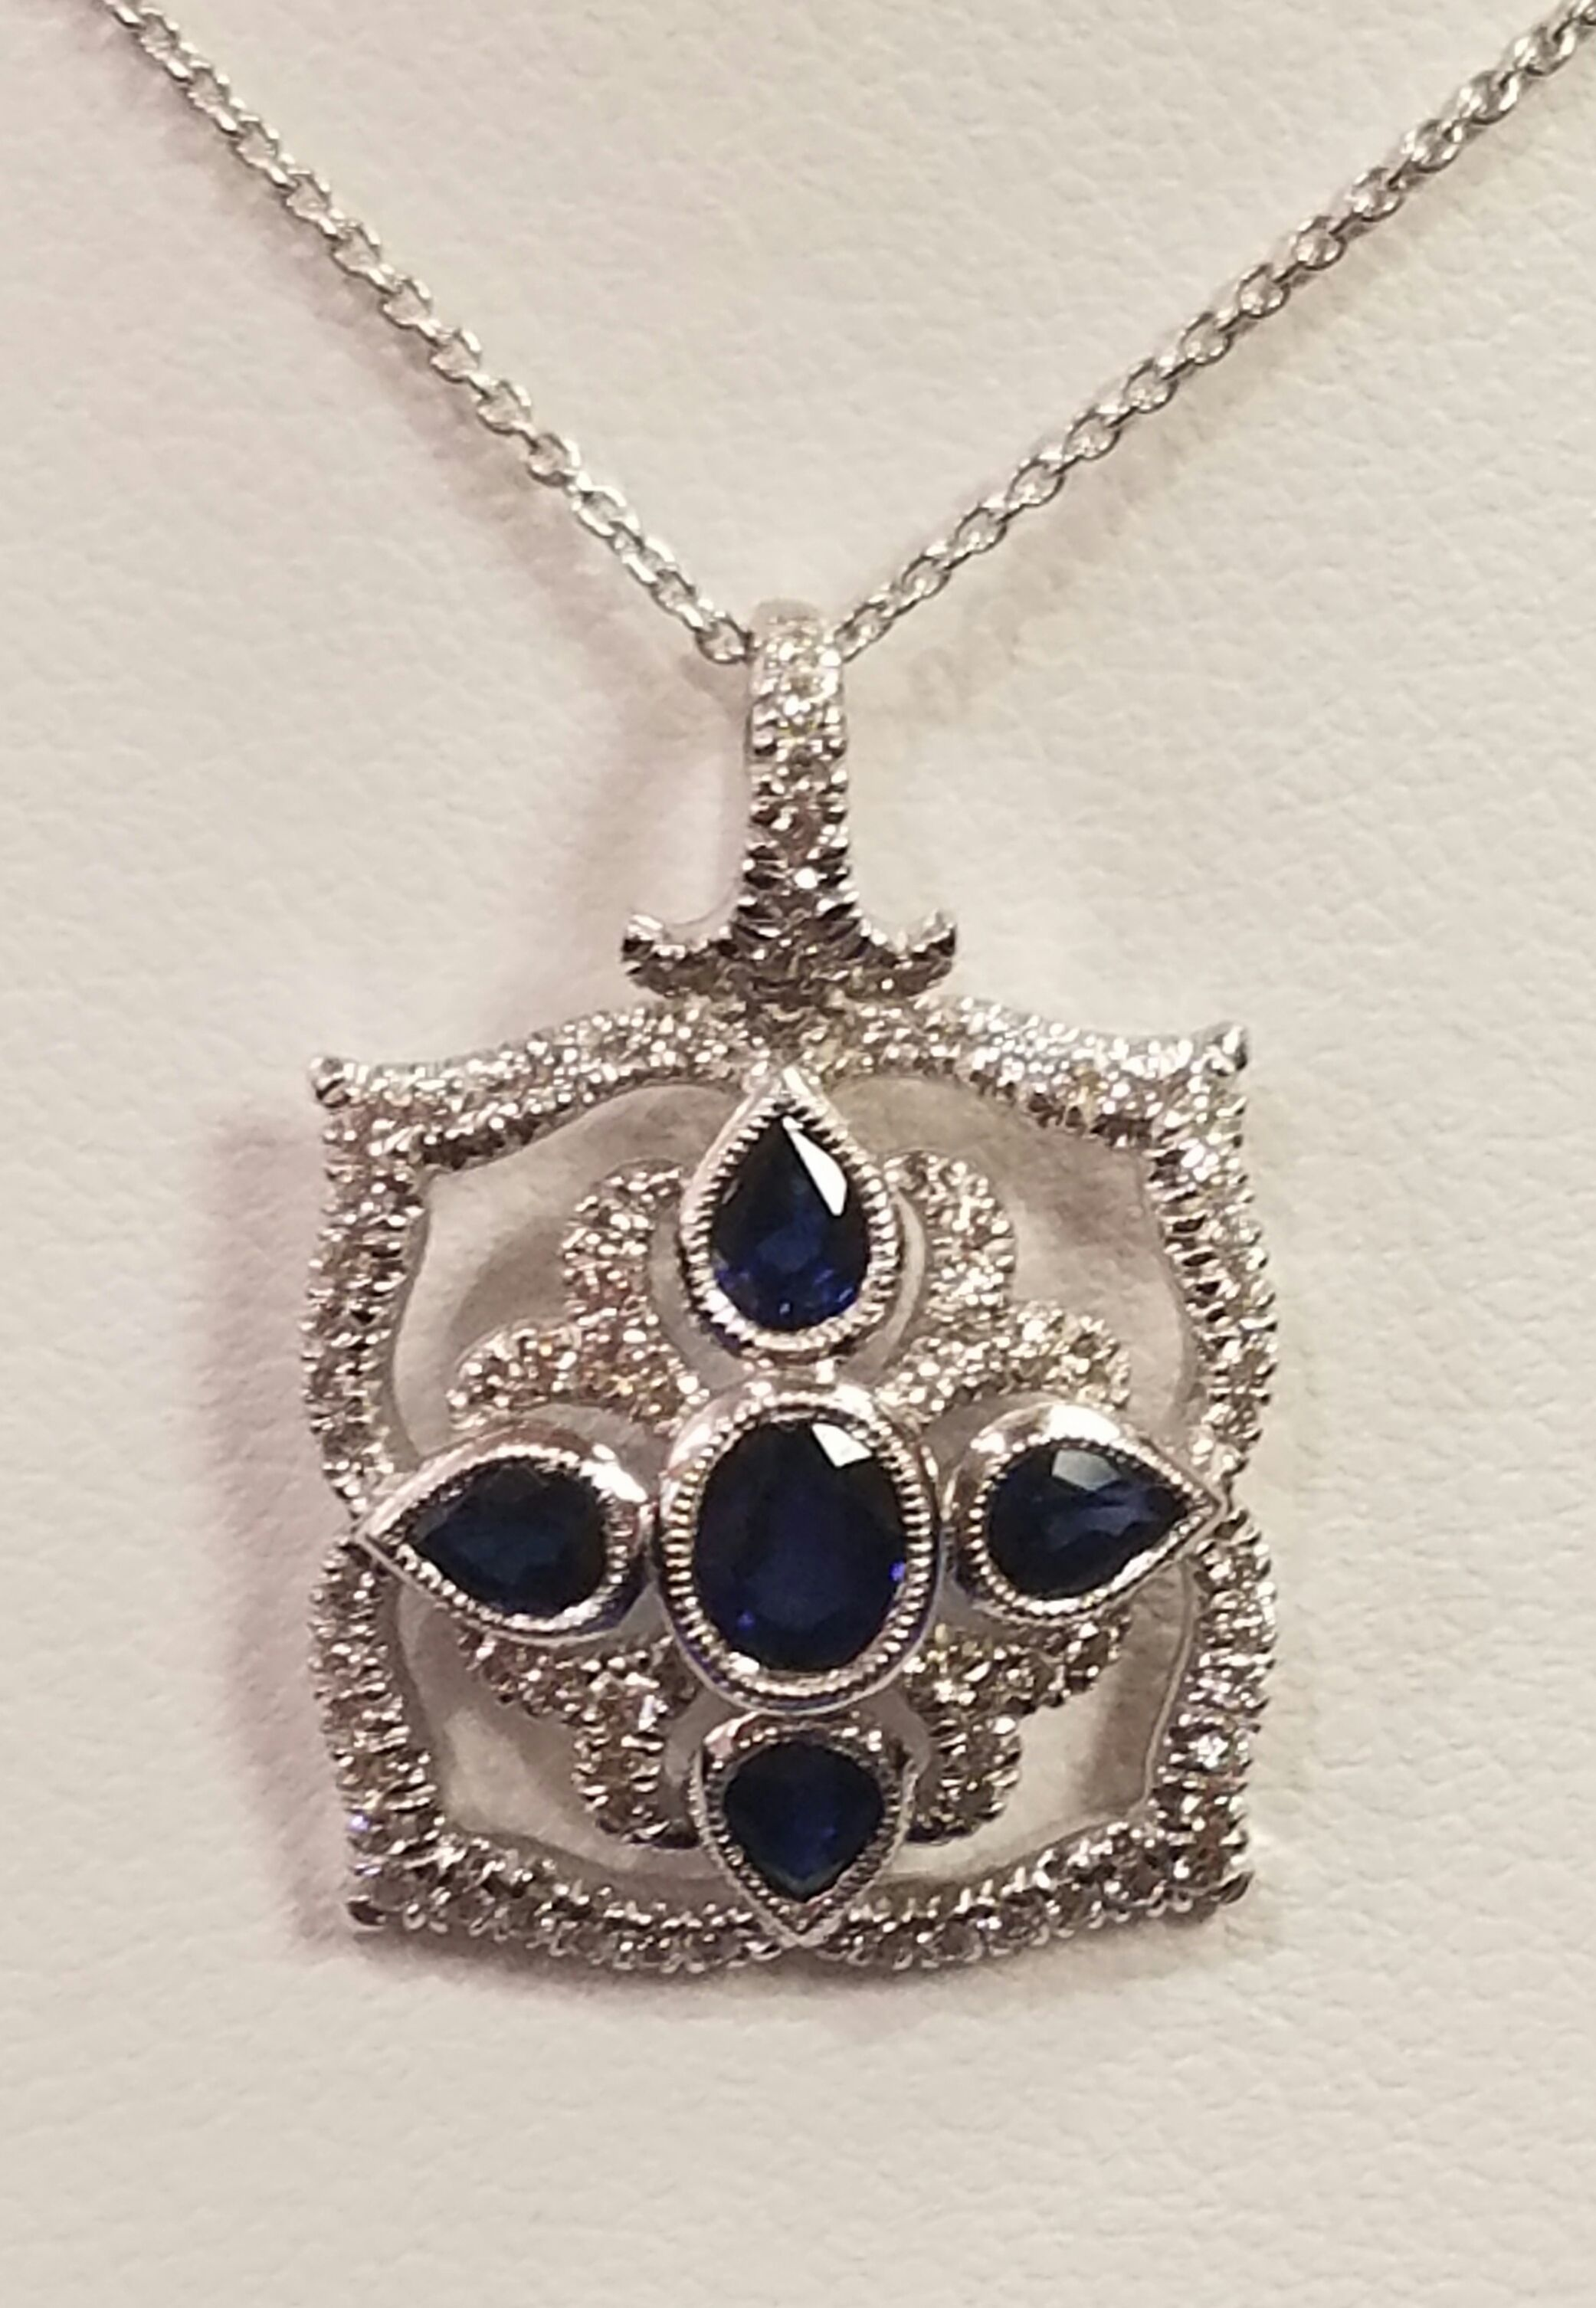 14kt white gold 5 sapphire and 78 diamonds necklace.